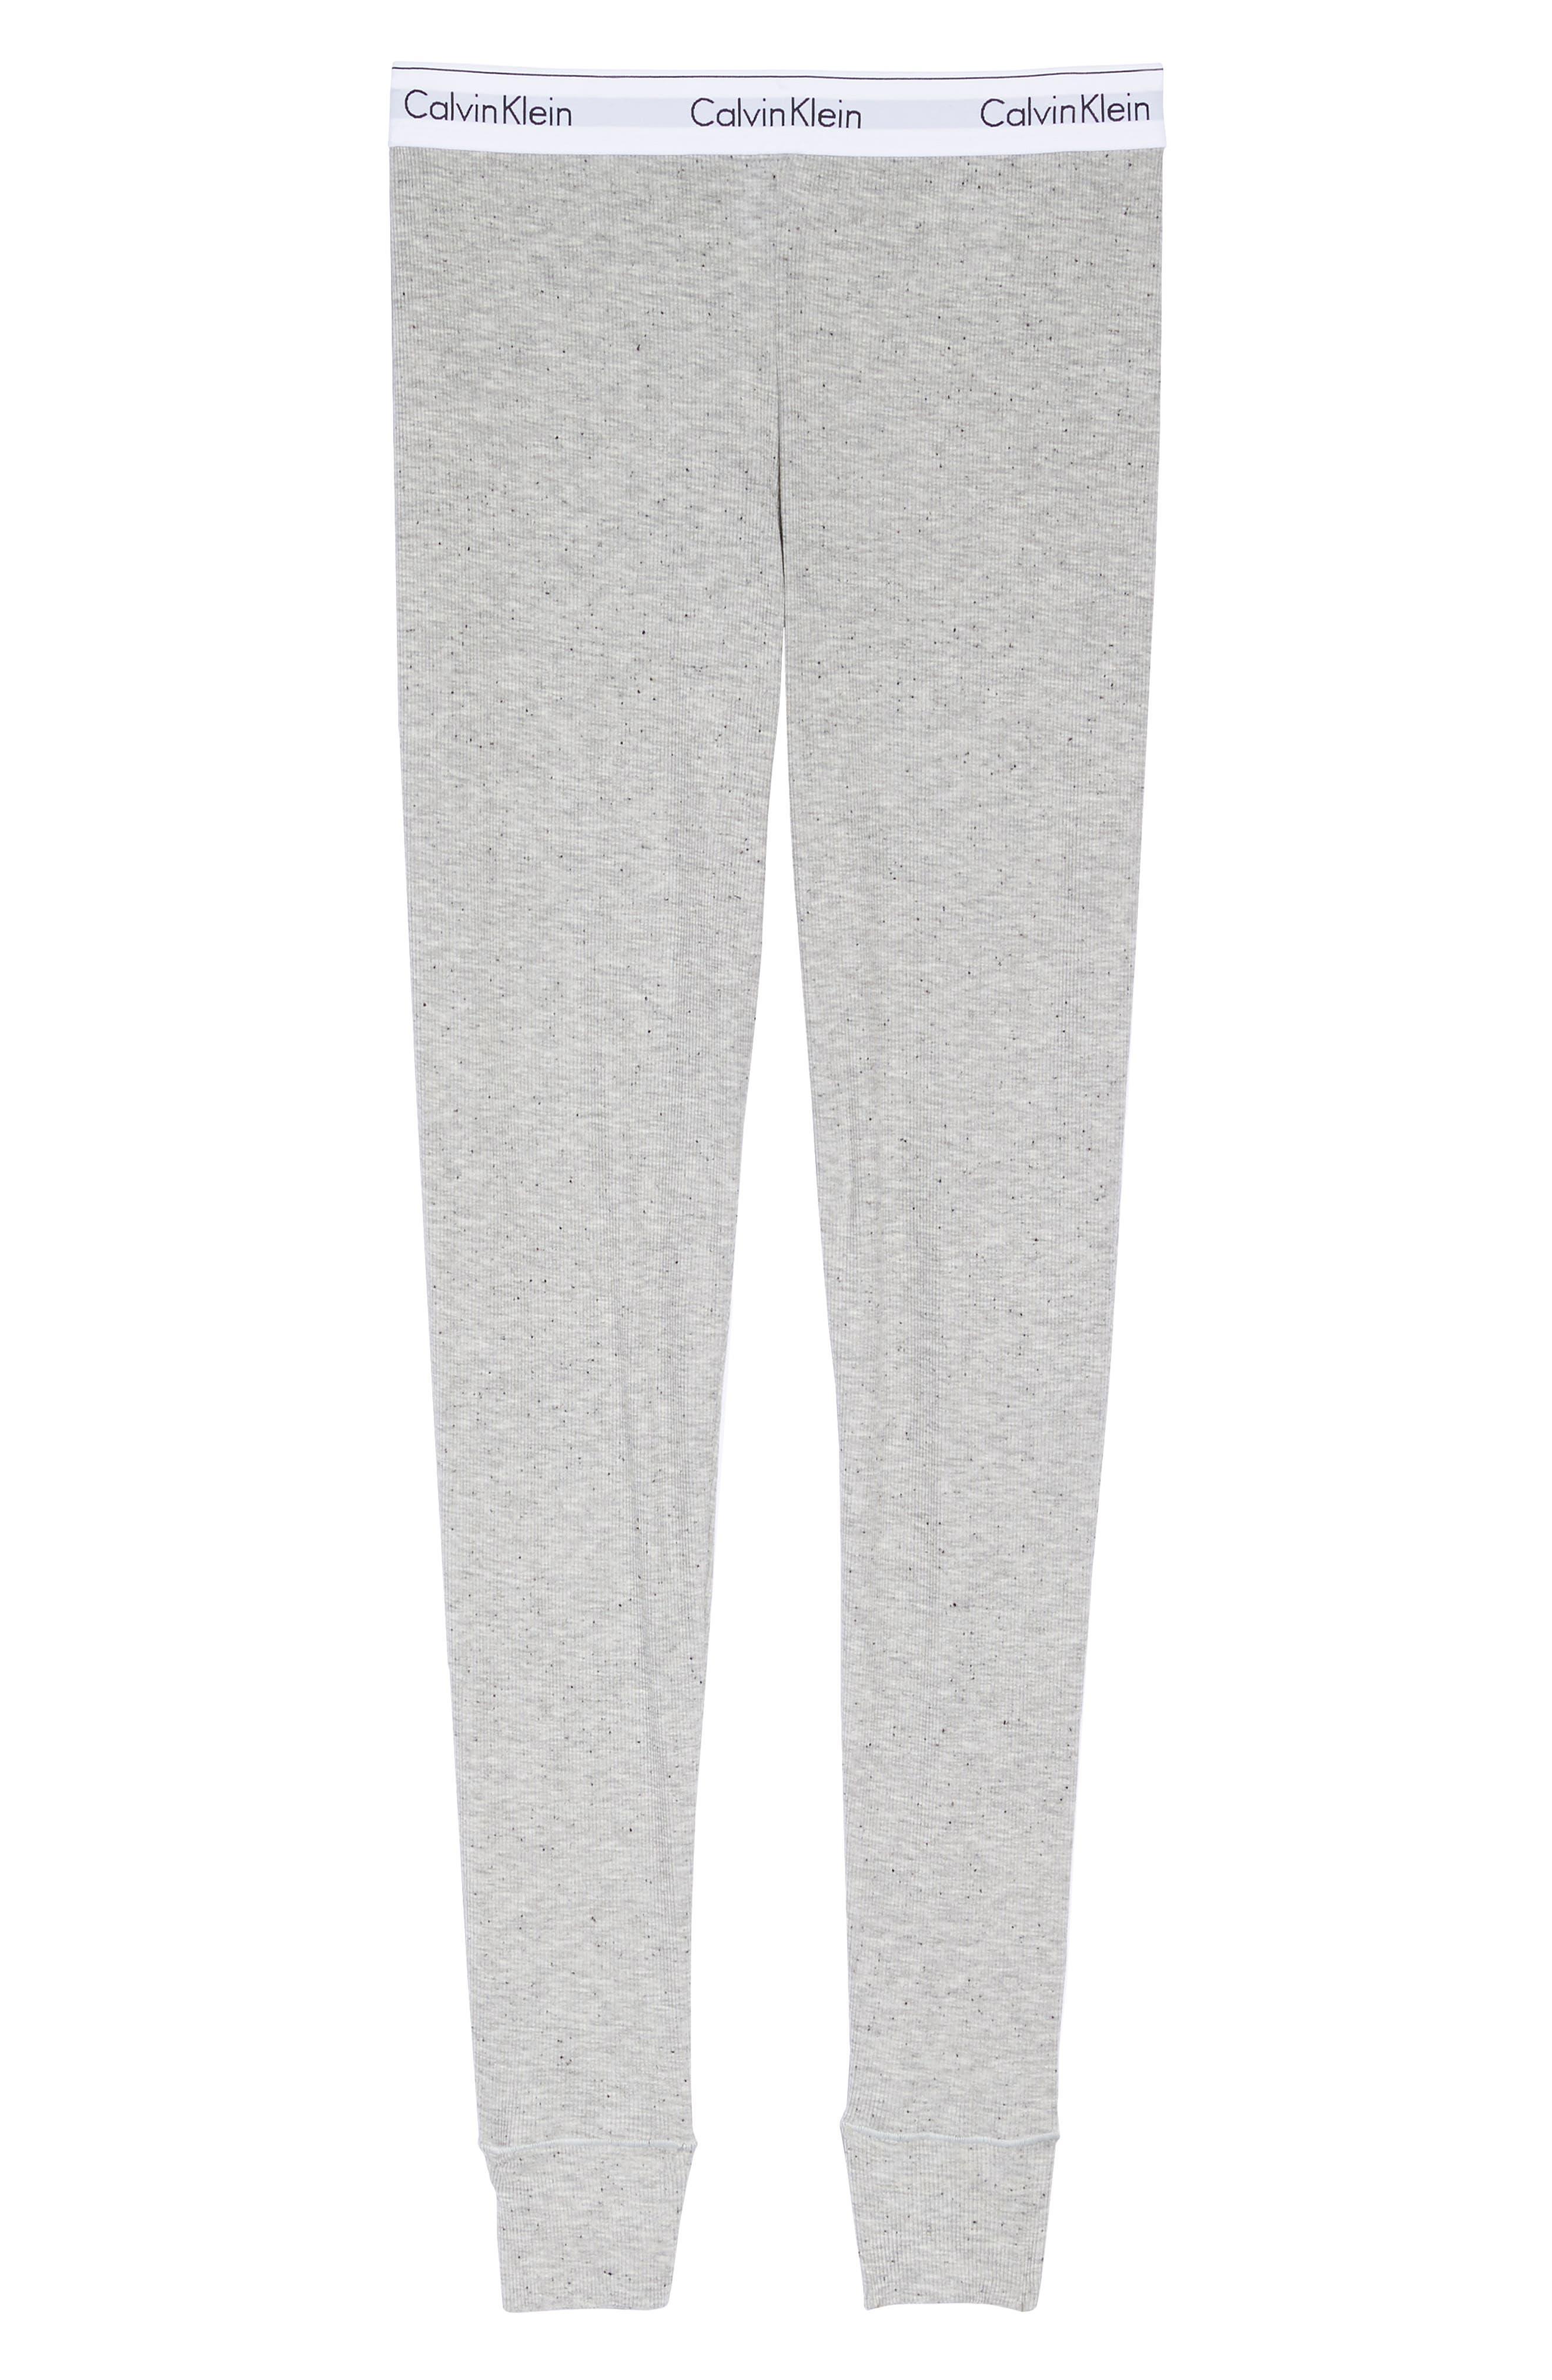 Lounge Leggings,                             Alternate thumbnail 4, color,                             Graphic Rib Grey Heather